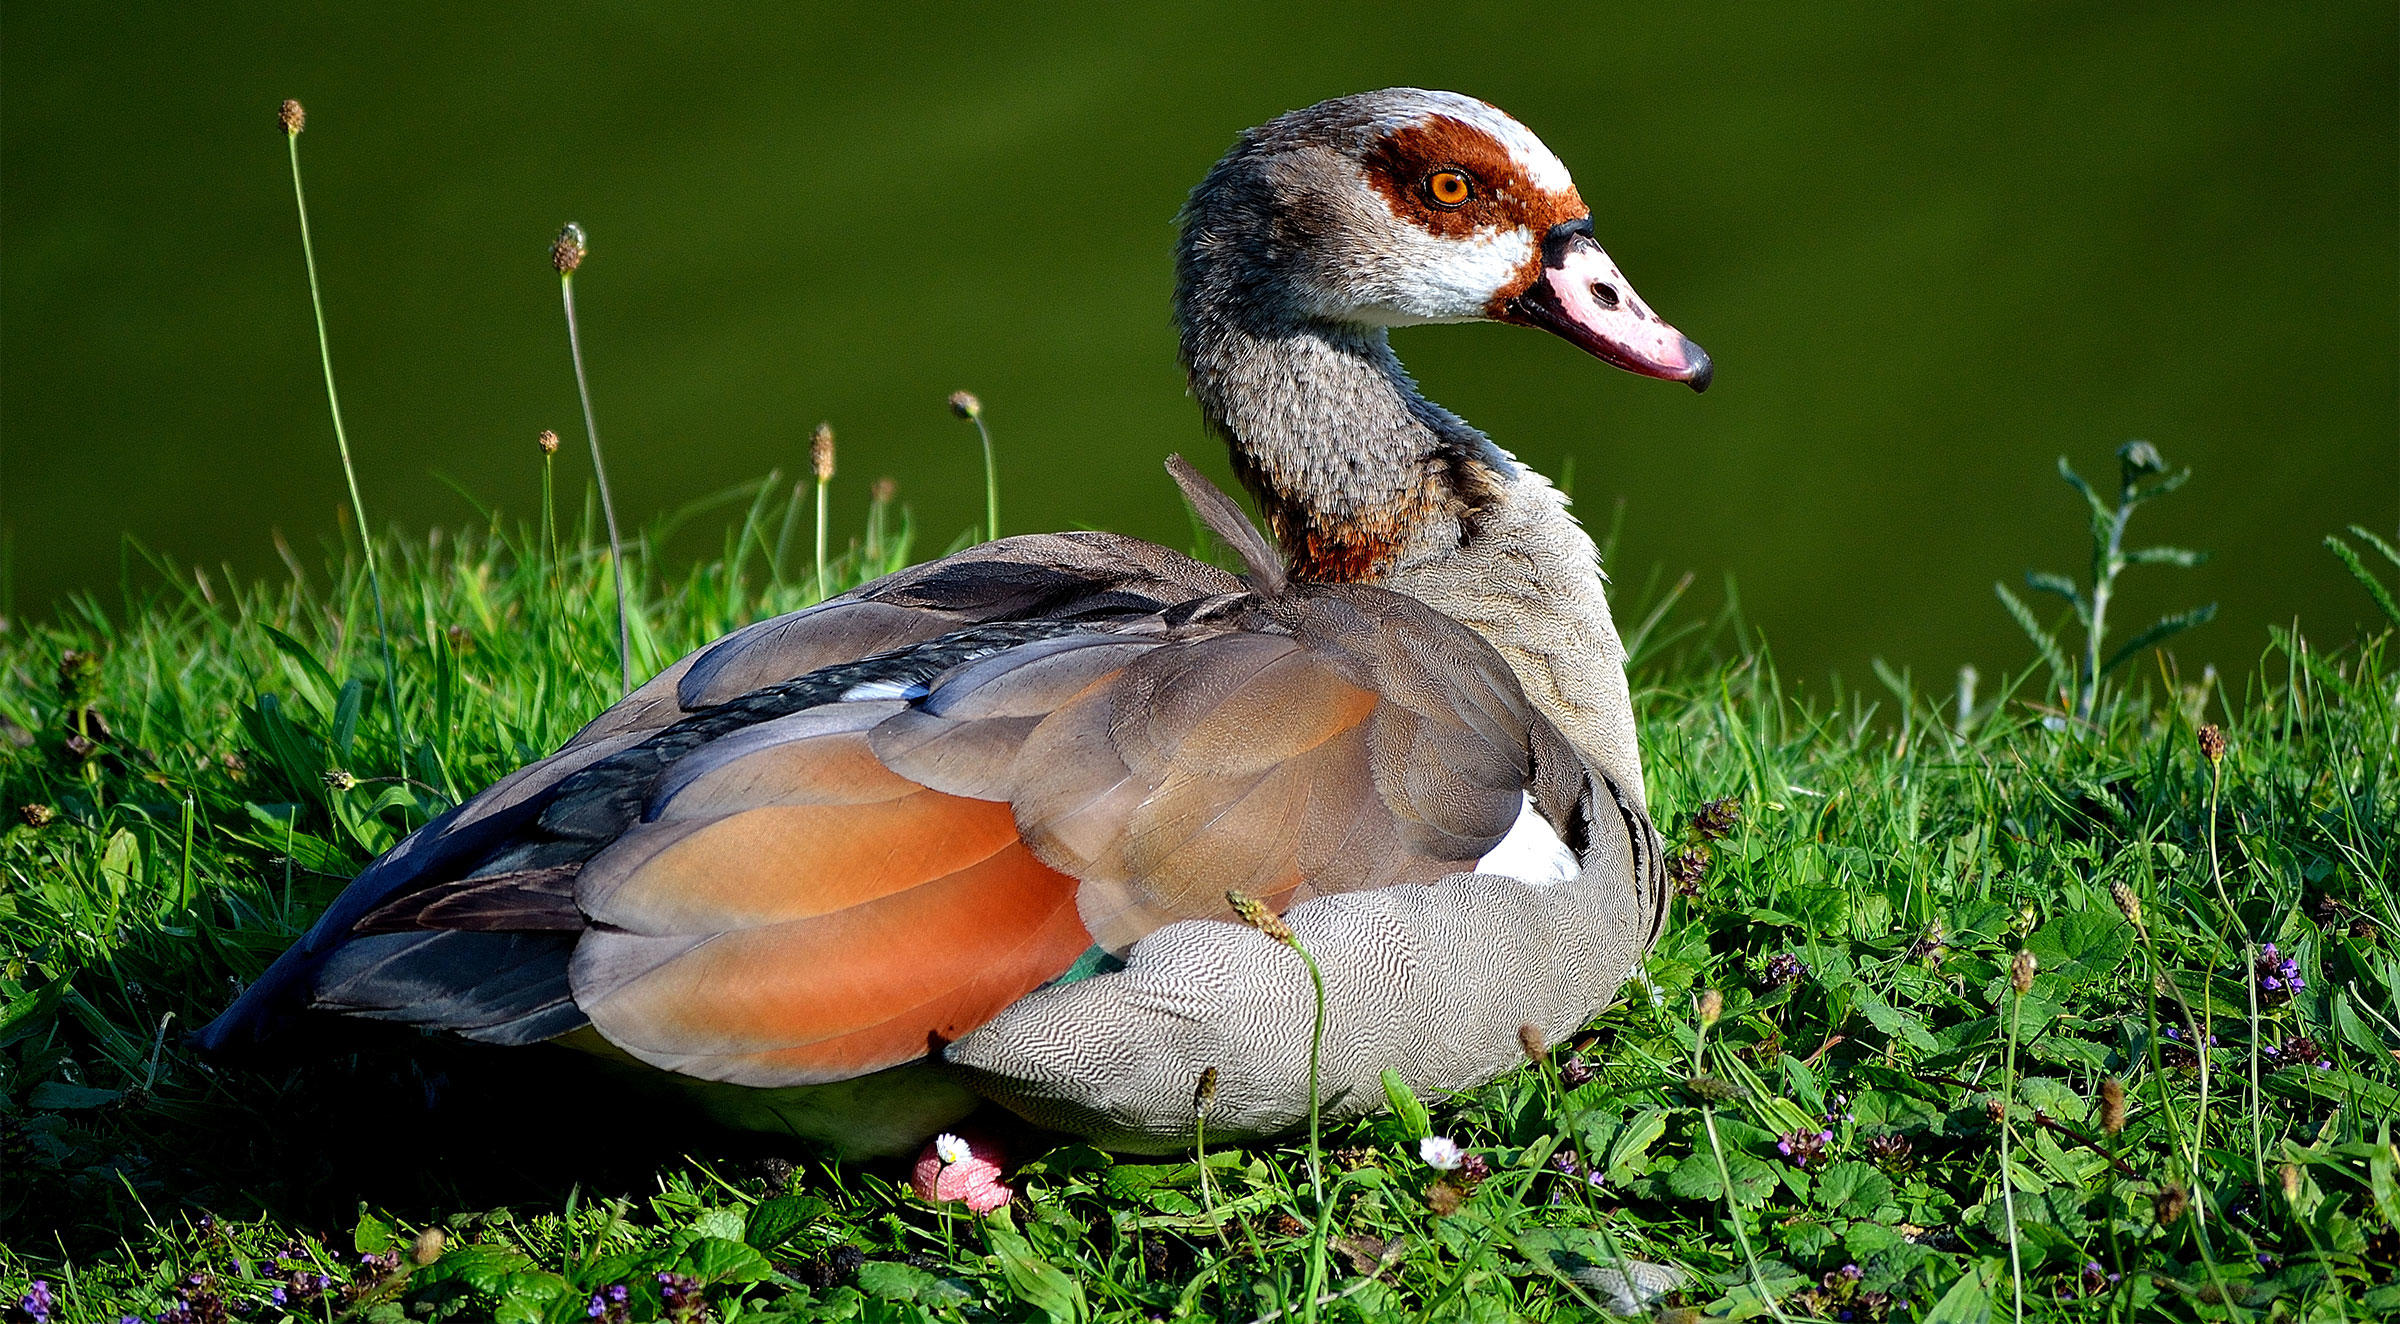 The Egyptian goose in Sweden